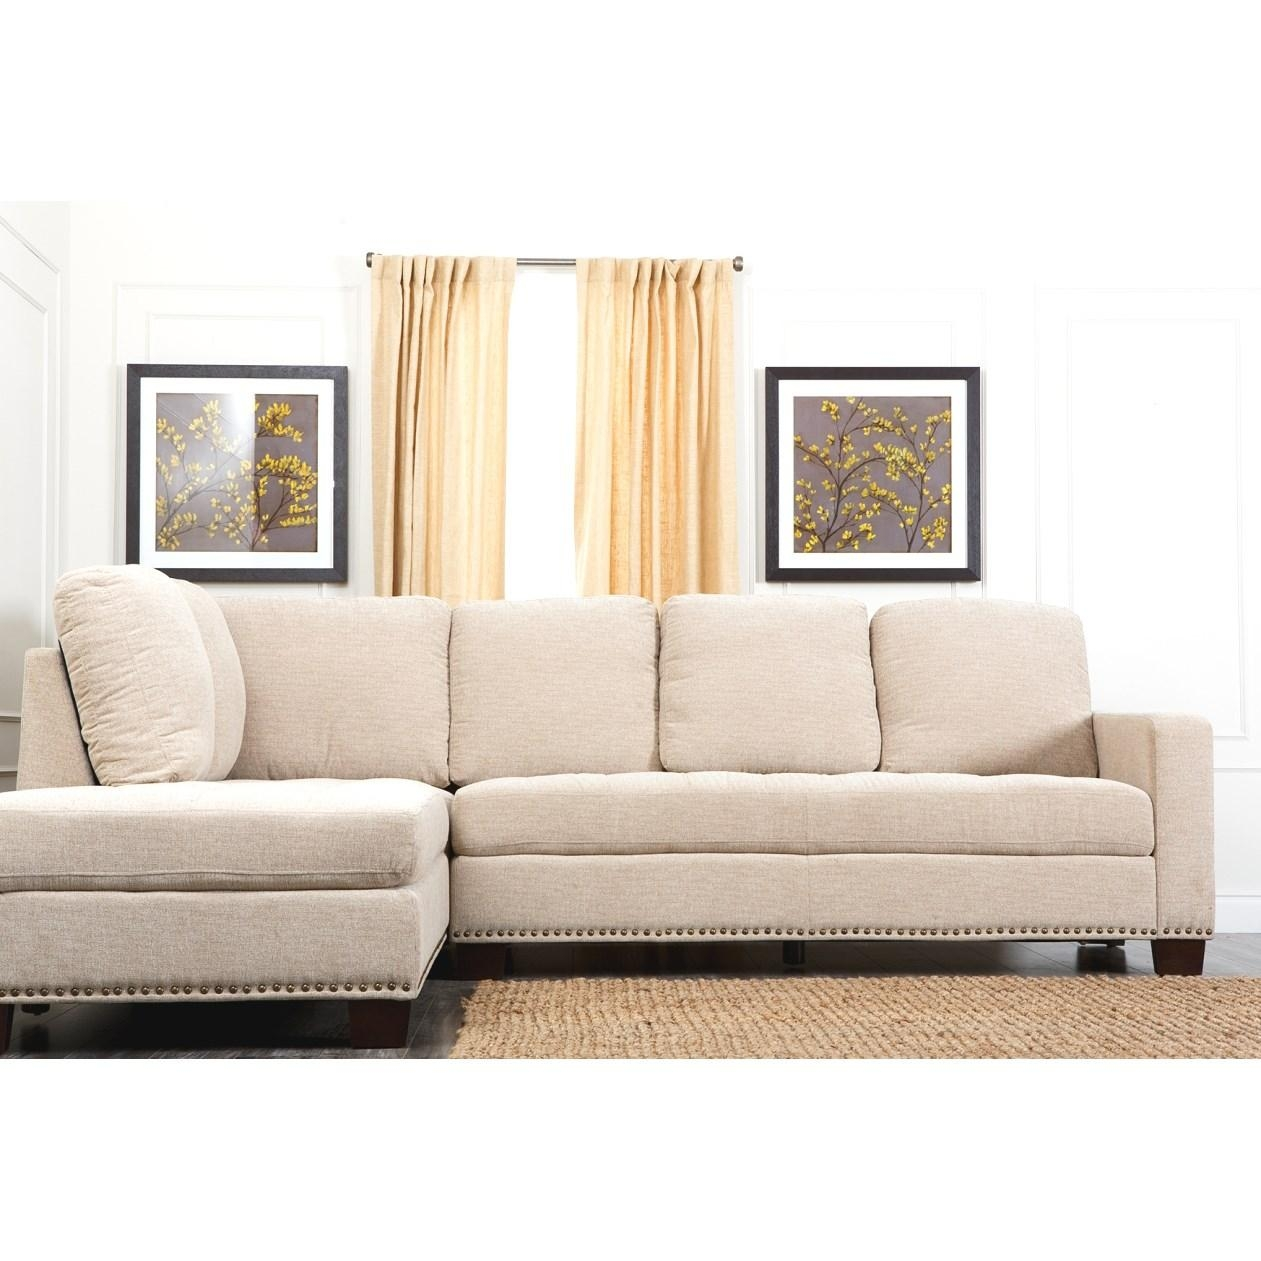 Abbyson Living Ci D10357 Crm Claridge Fabric Sectional In Cream With Abbyson Living Sectional (View 14 of 15)